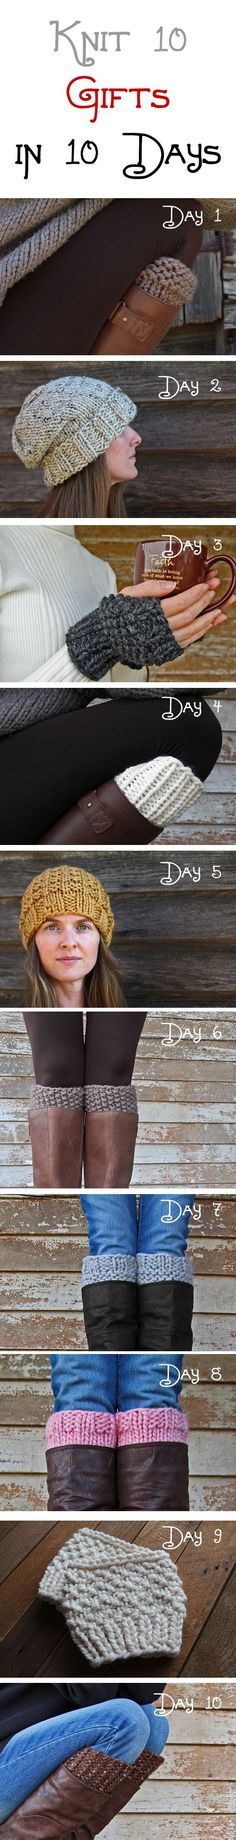 Knit 10 Gifts in 10...